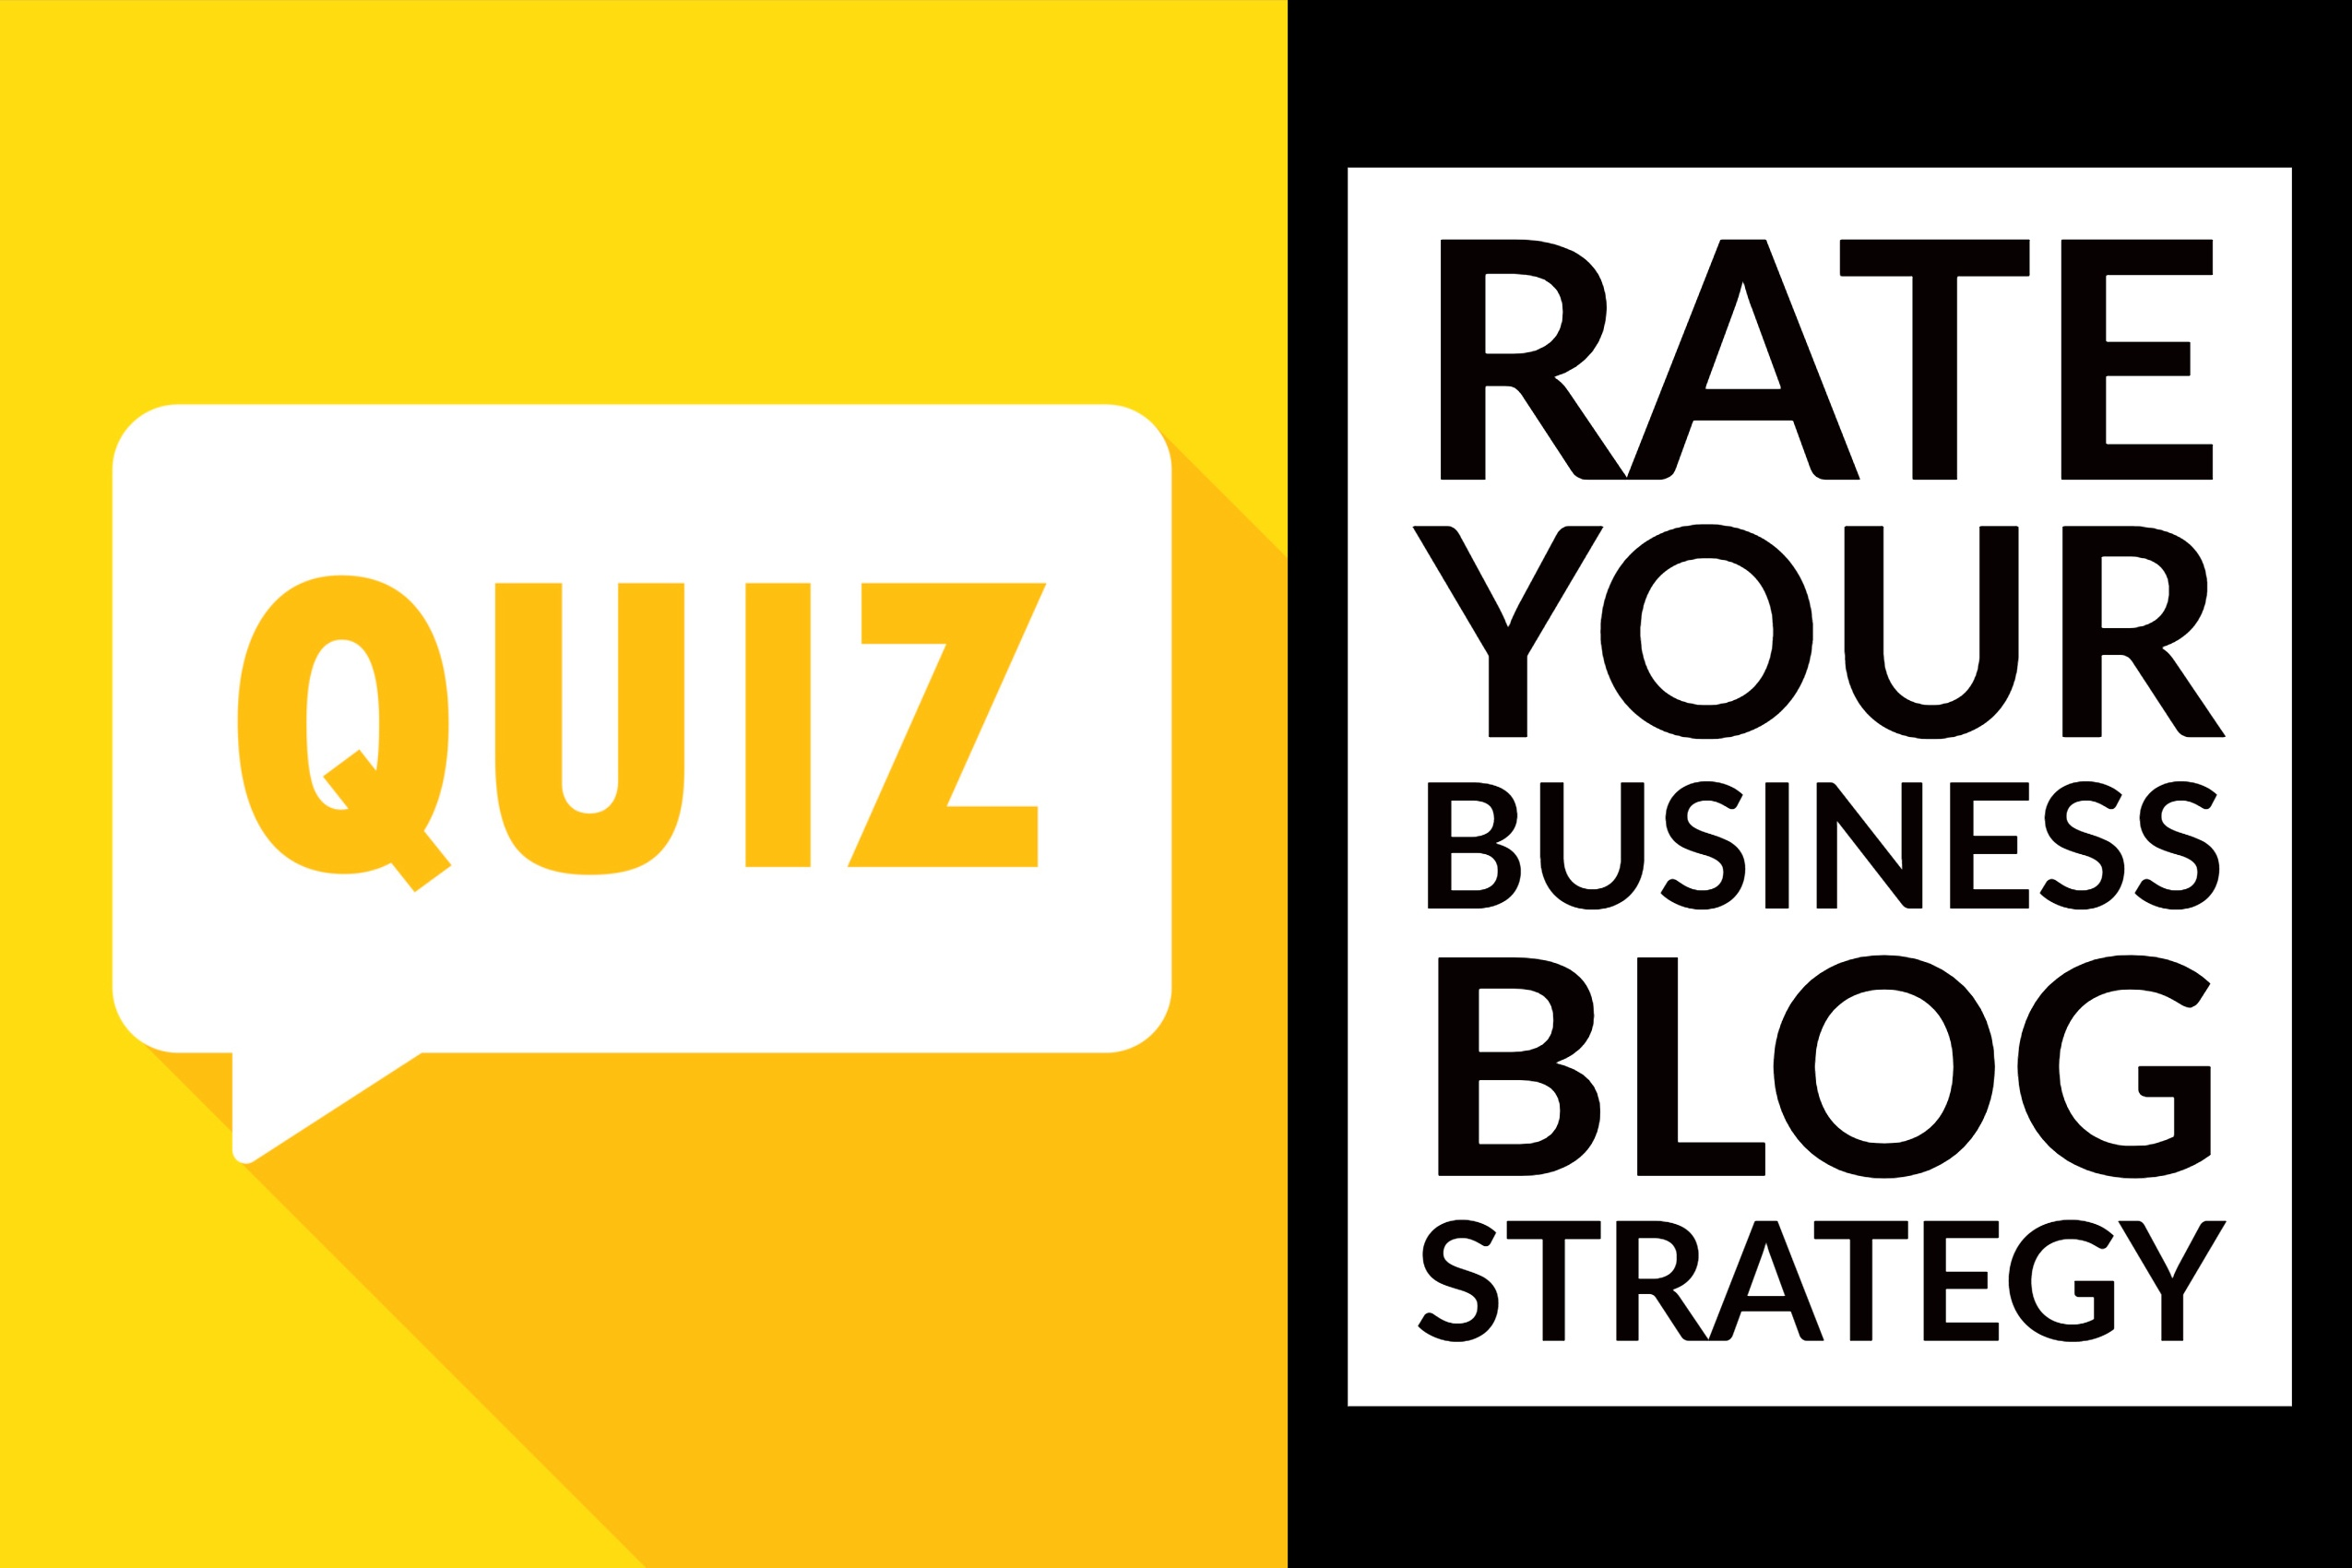 Rate Your Business Blog Strategy (quiz)